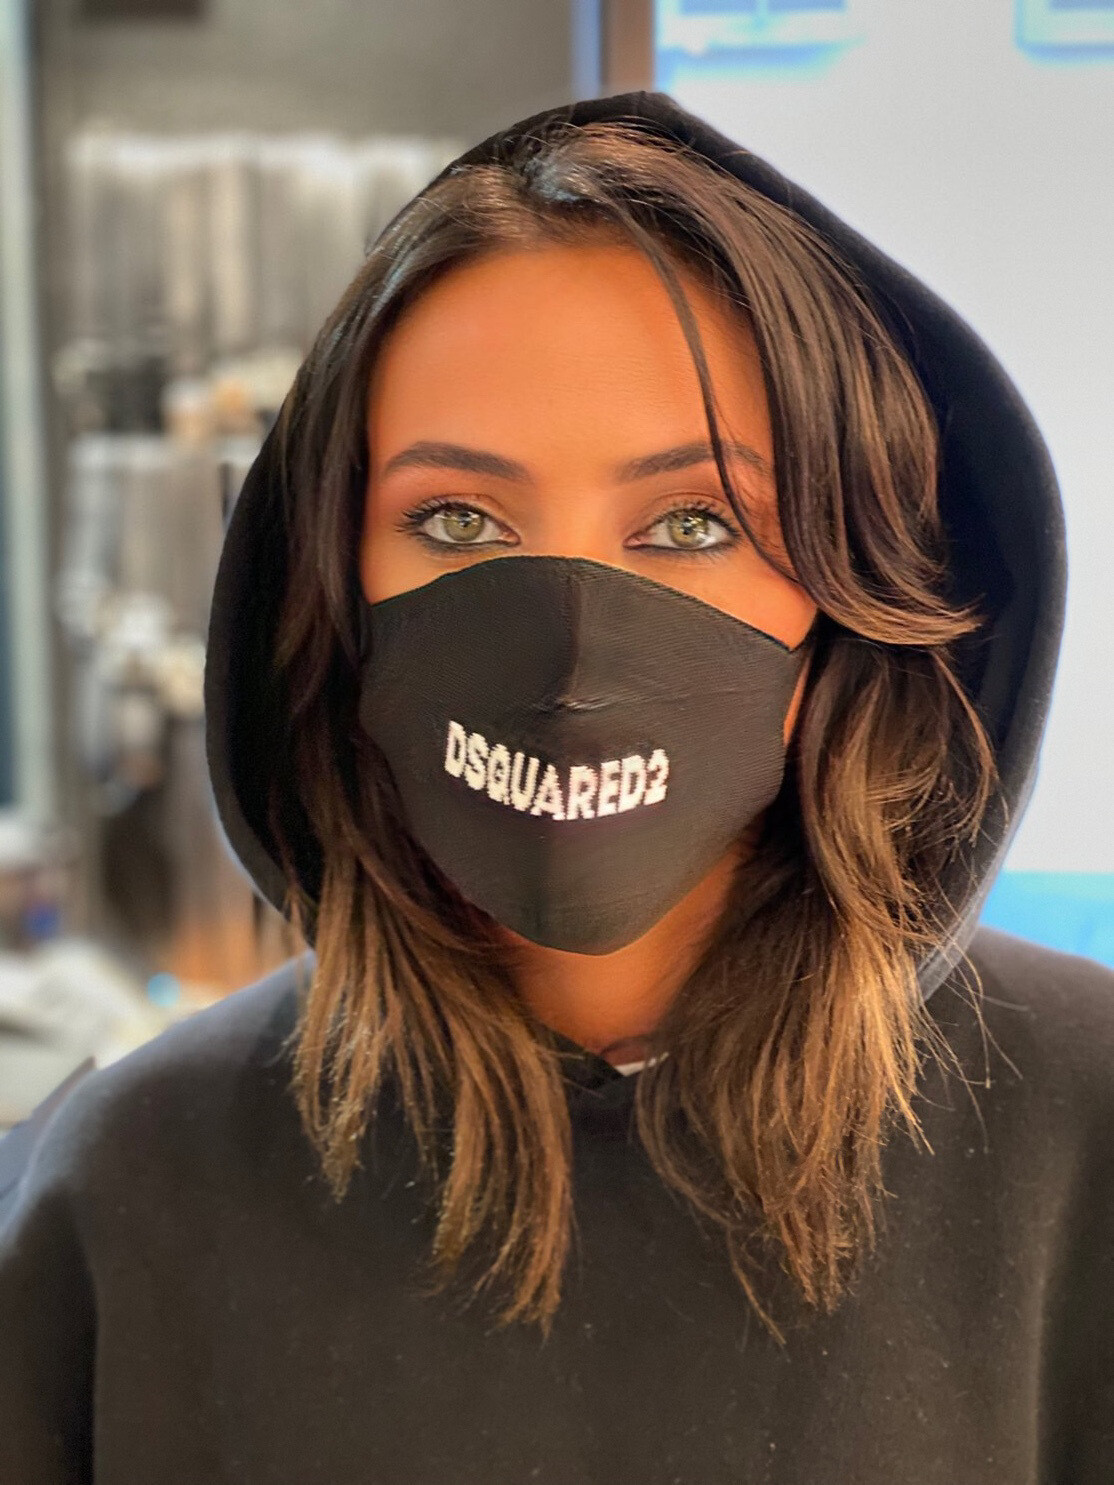 DSQUARED2 Mask